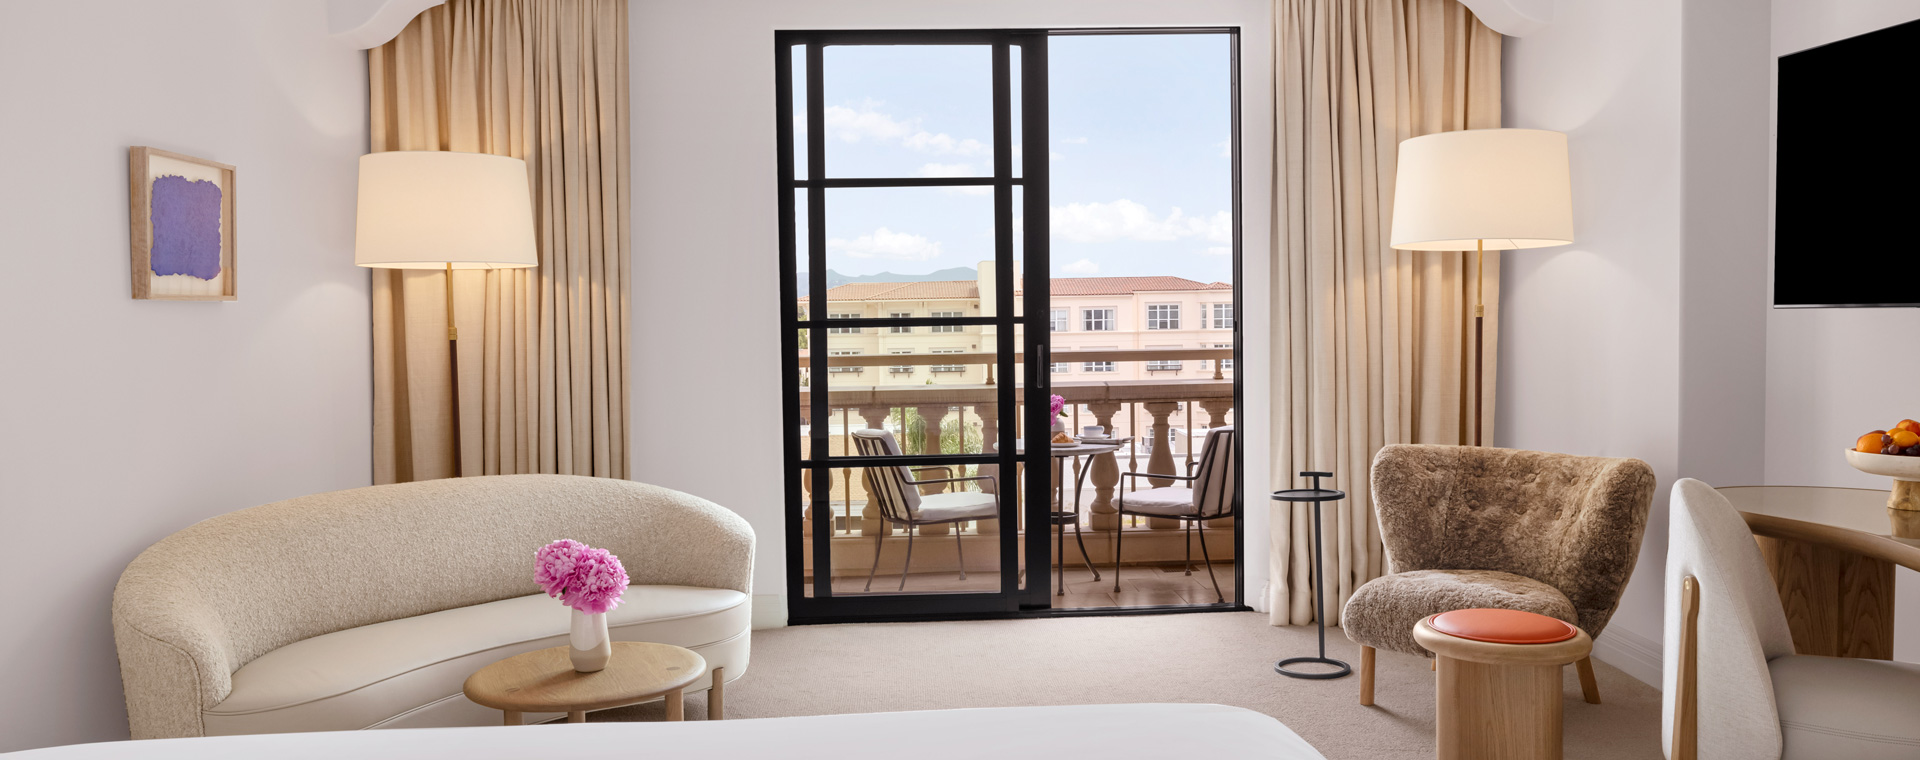 Terrace with two chairs and black pane windows in Maybourne Balcony Room